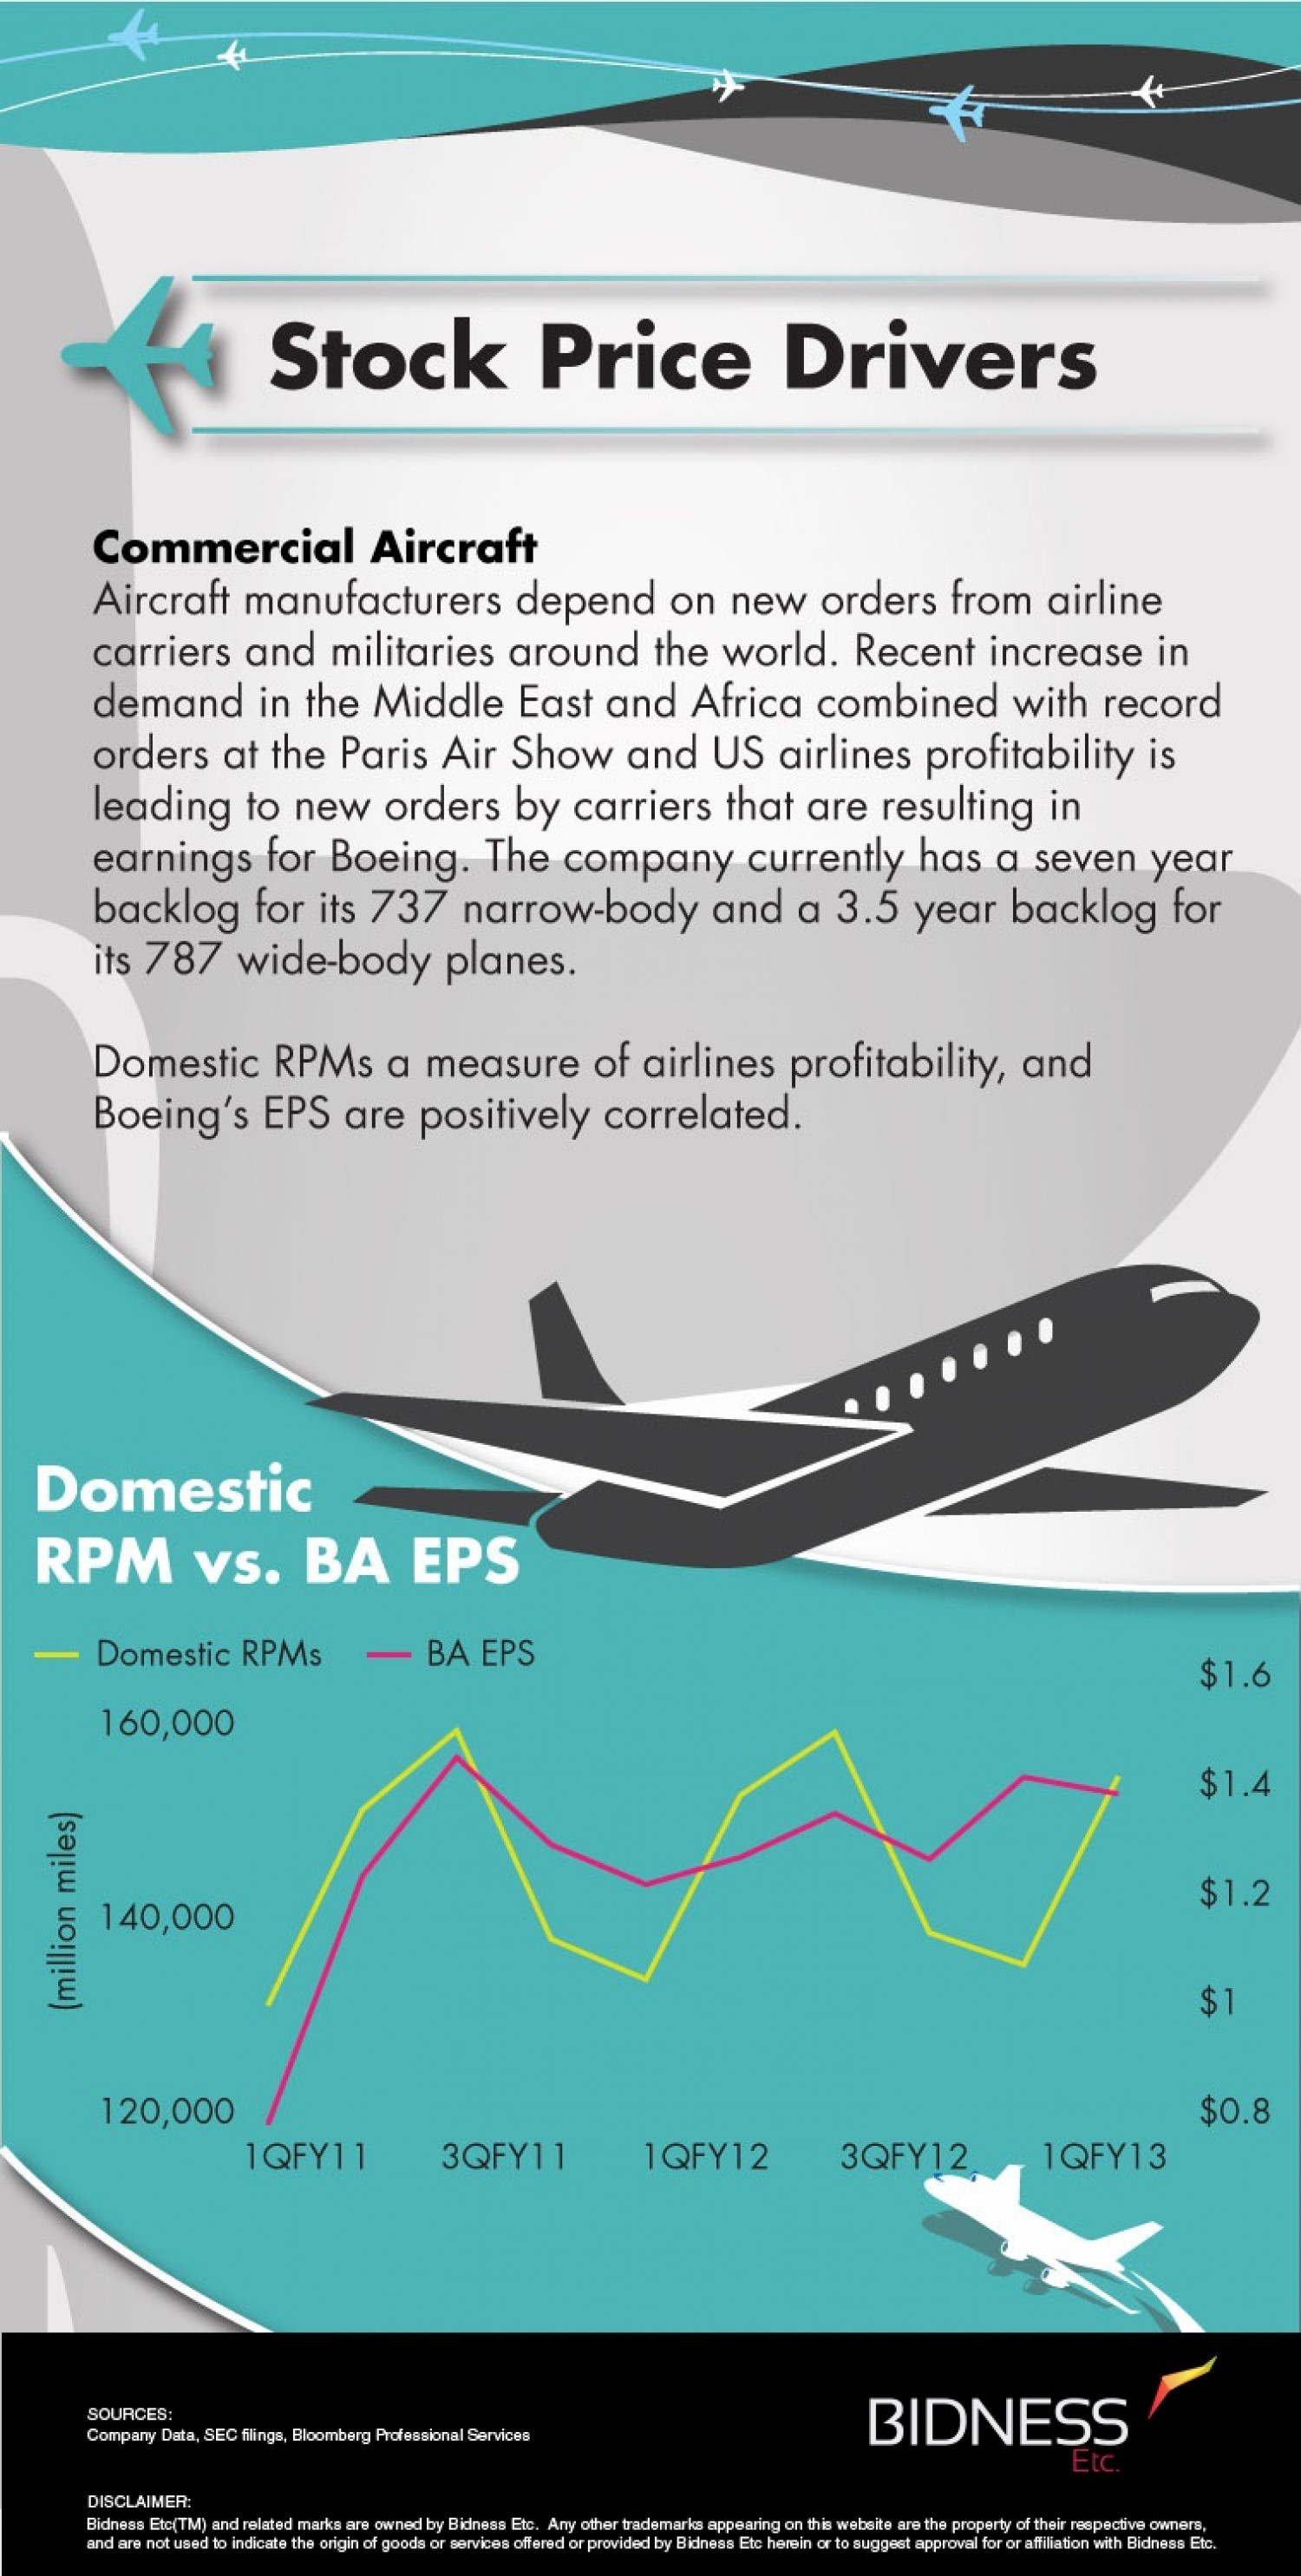 Boeing (BA) Stock Price Drivers Infographic